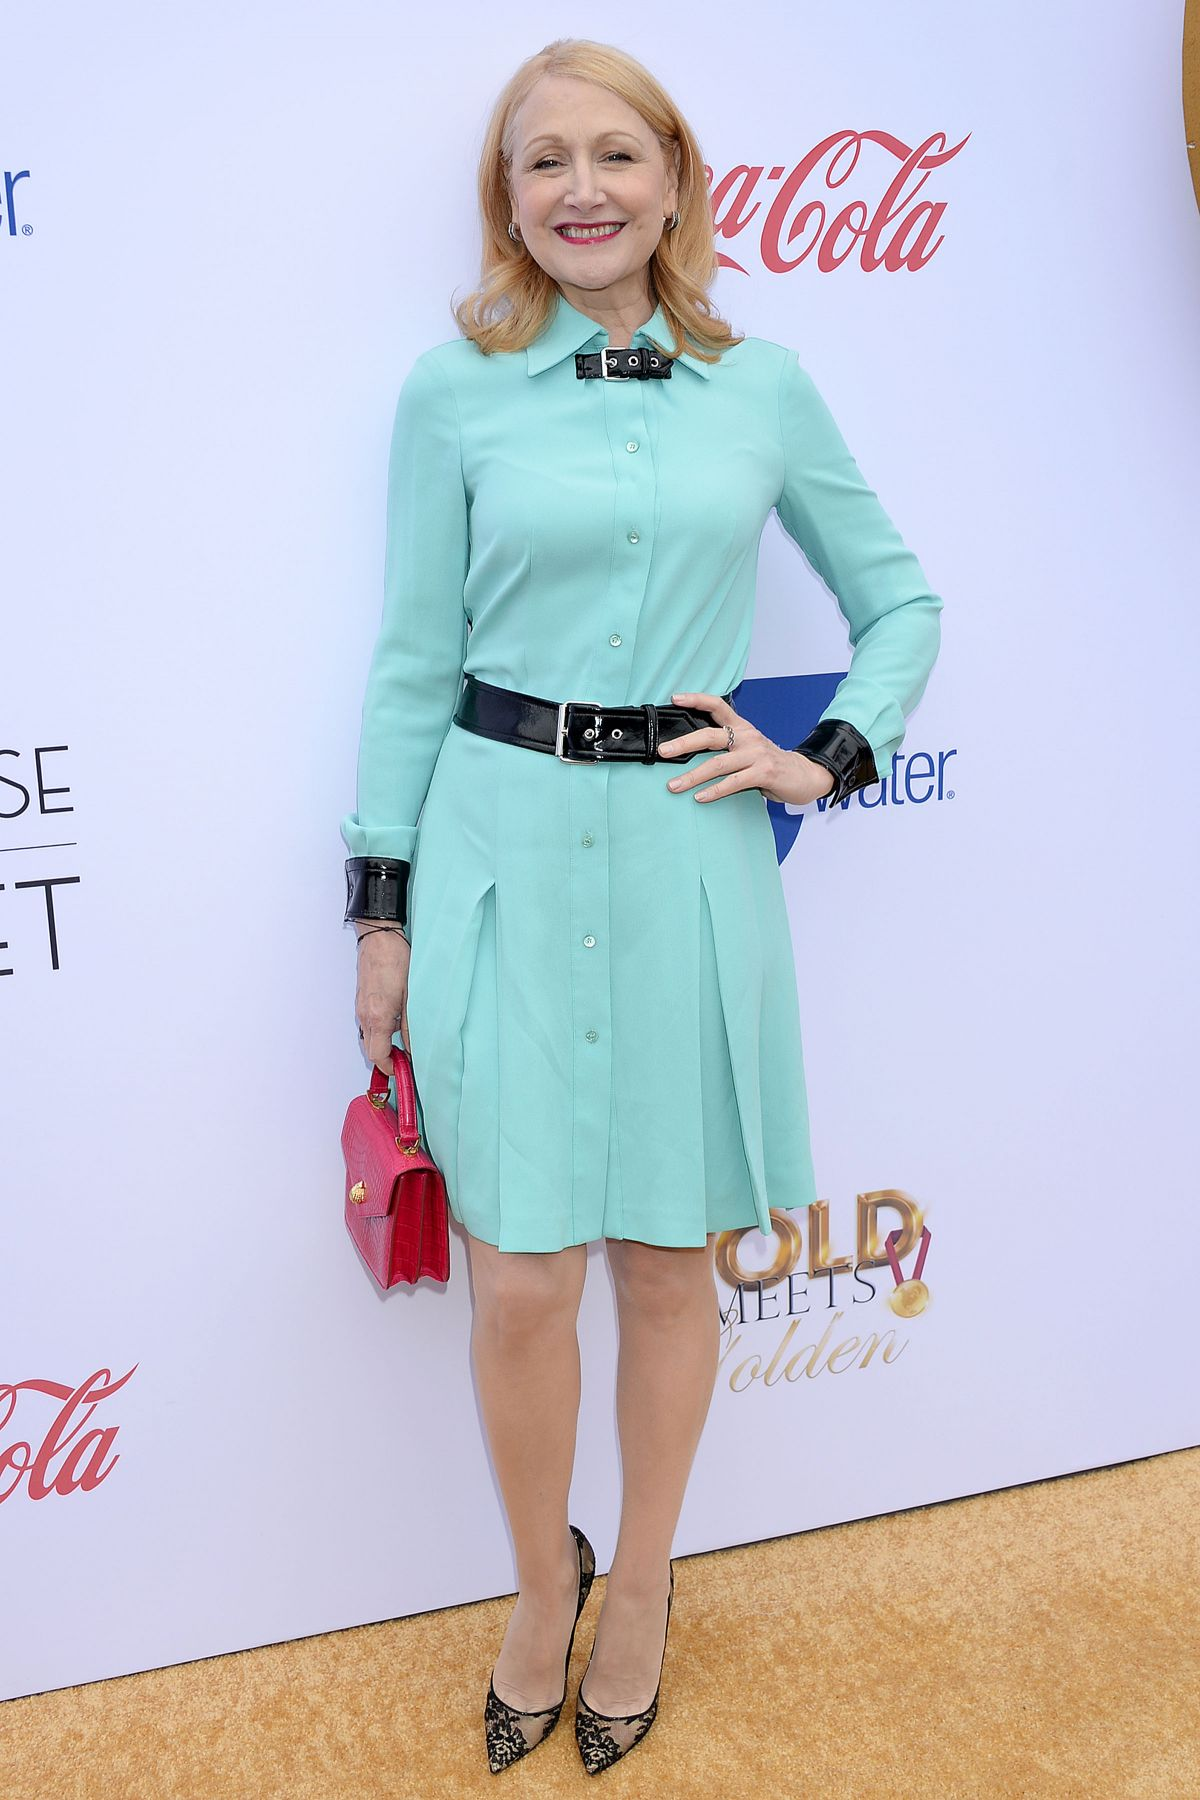 patricia-clarkson-at-gold-meets-golden-brunch-in-beverly-hills-01-05-2019-2.jpg